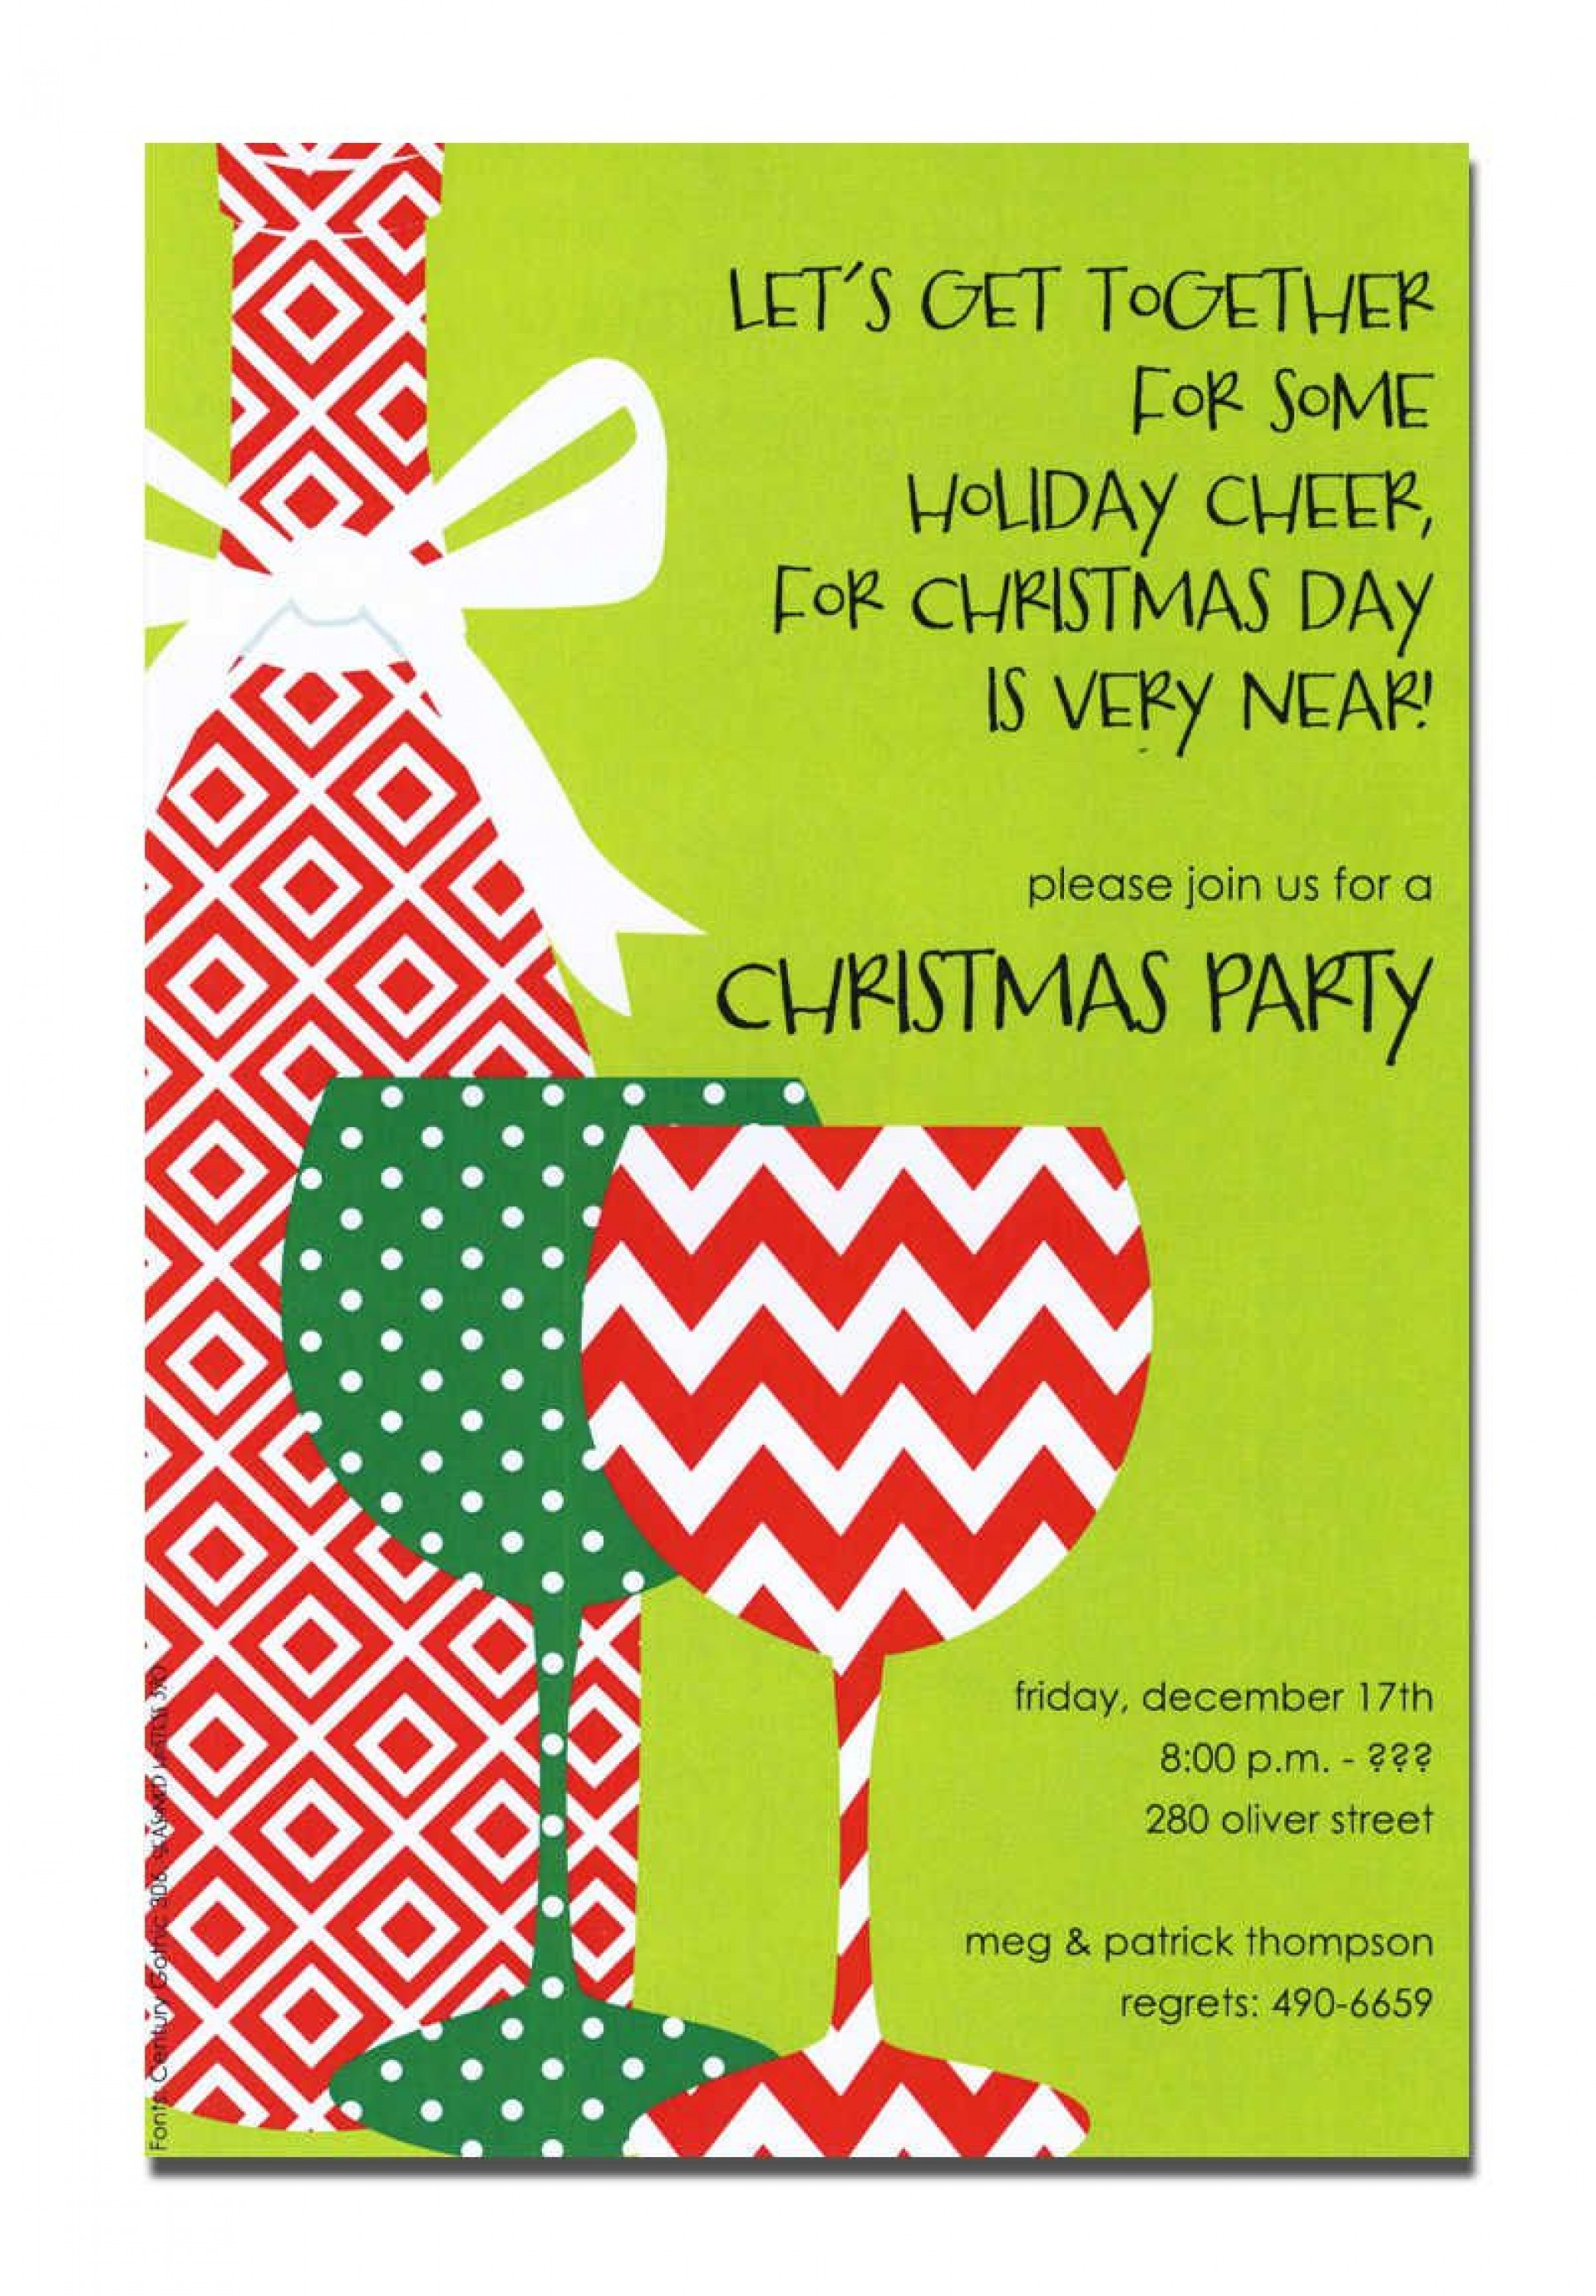 008 Remarkable Holiday Open House Invitation Template Sample  Christma Free Printable Wording Idea1920